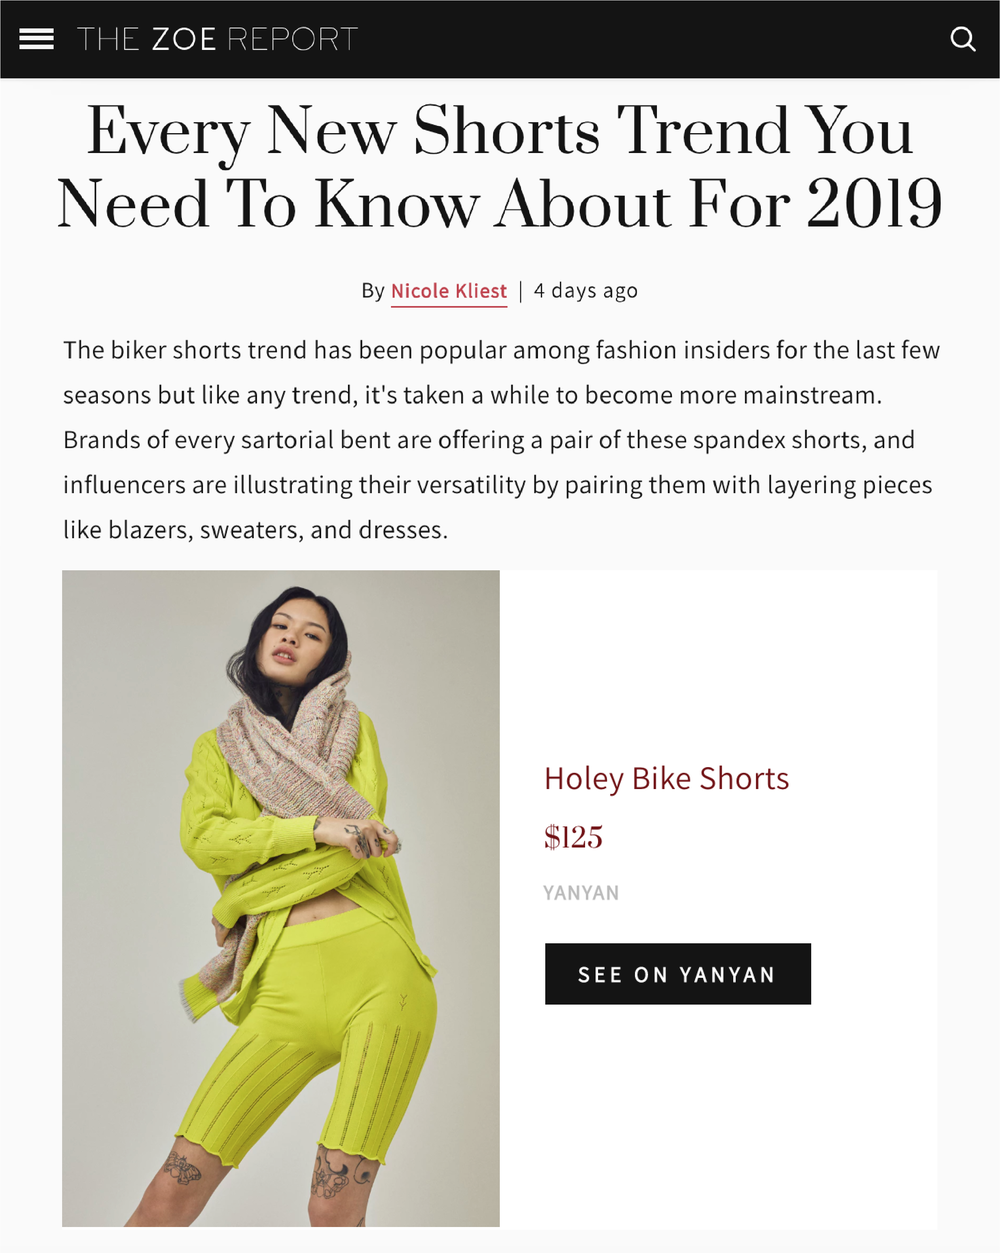 https://www.thezoereport.com/p/every-new-shorts-trend-you-need-to-know-about-for-2019-17027003